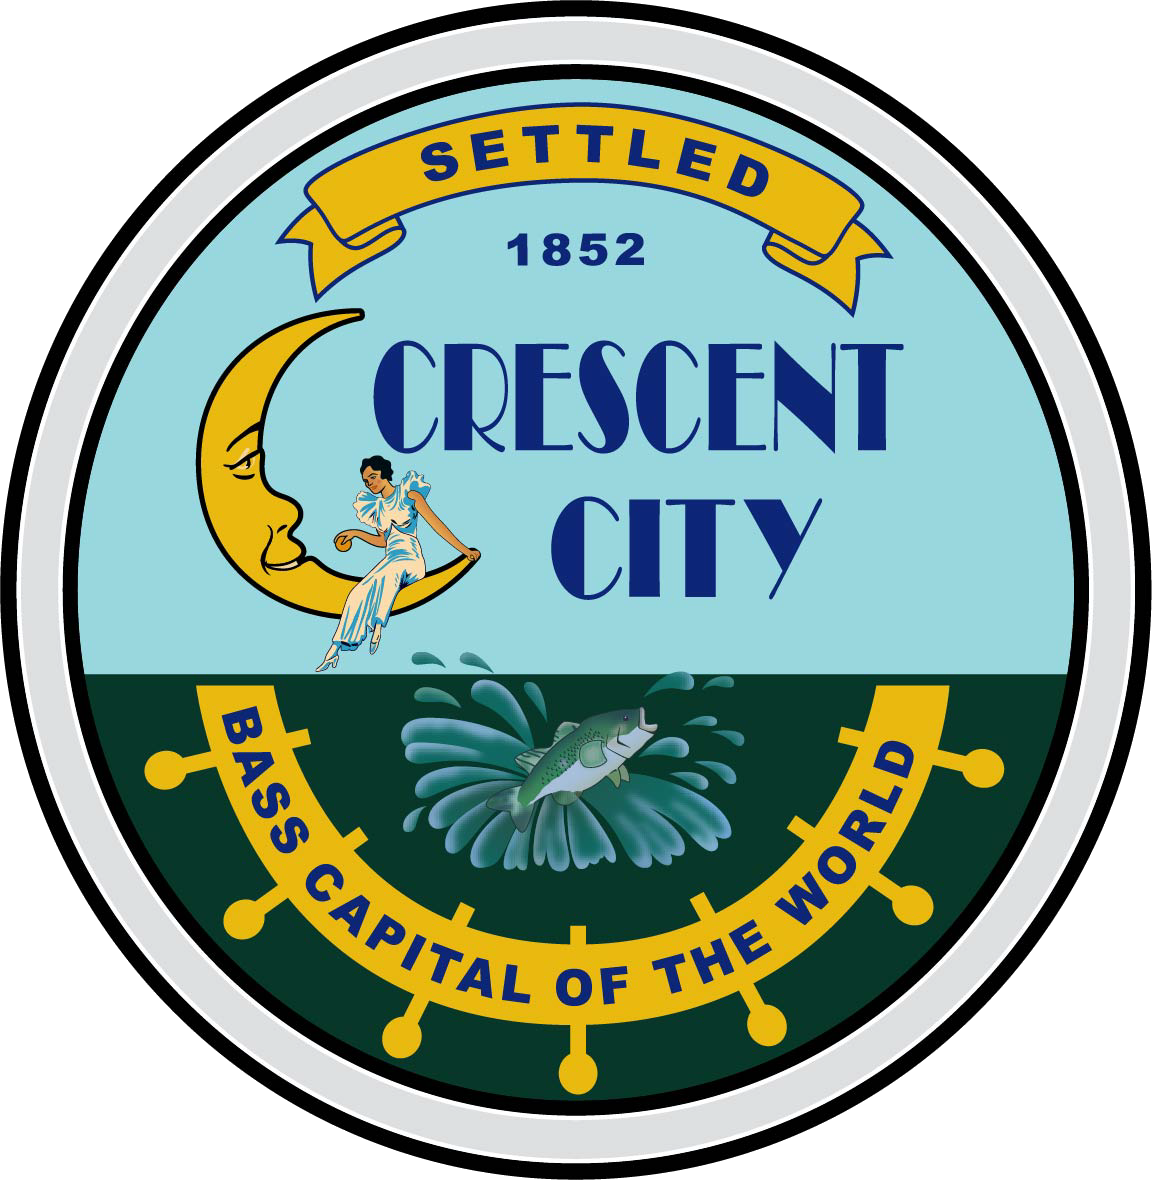 Crescent City, Florida